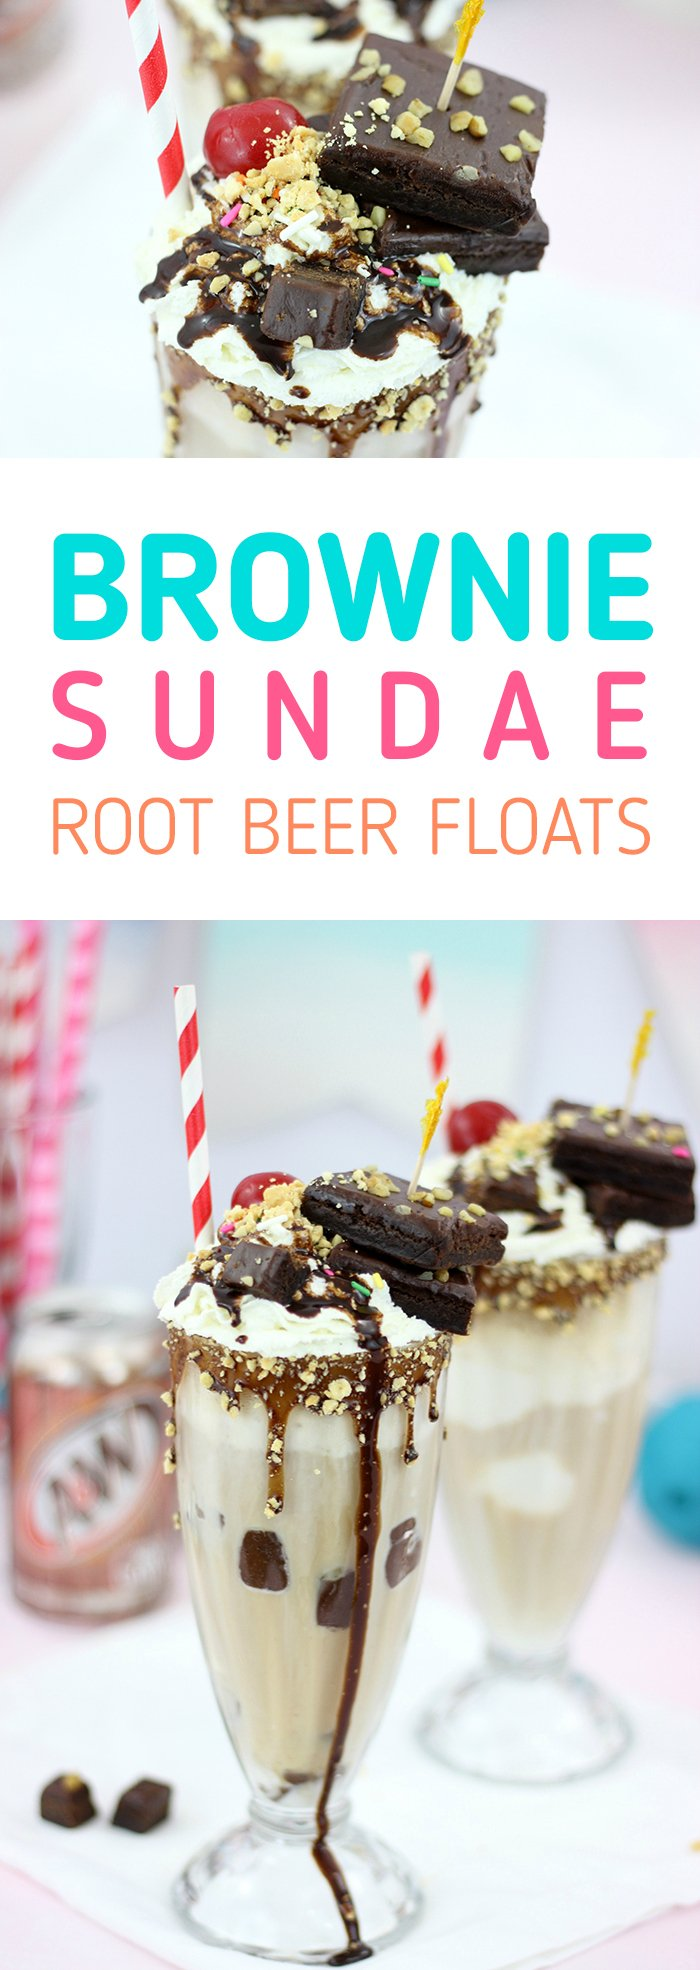 Brownie Sundae Root Beer Float. Basically two of the best desserts merged into one amazing creation. Yes Please